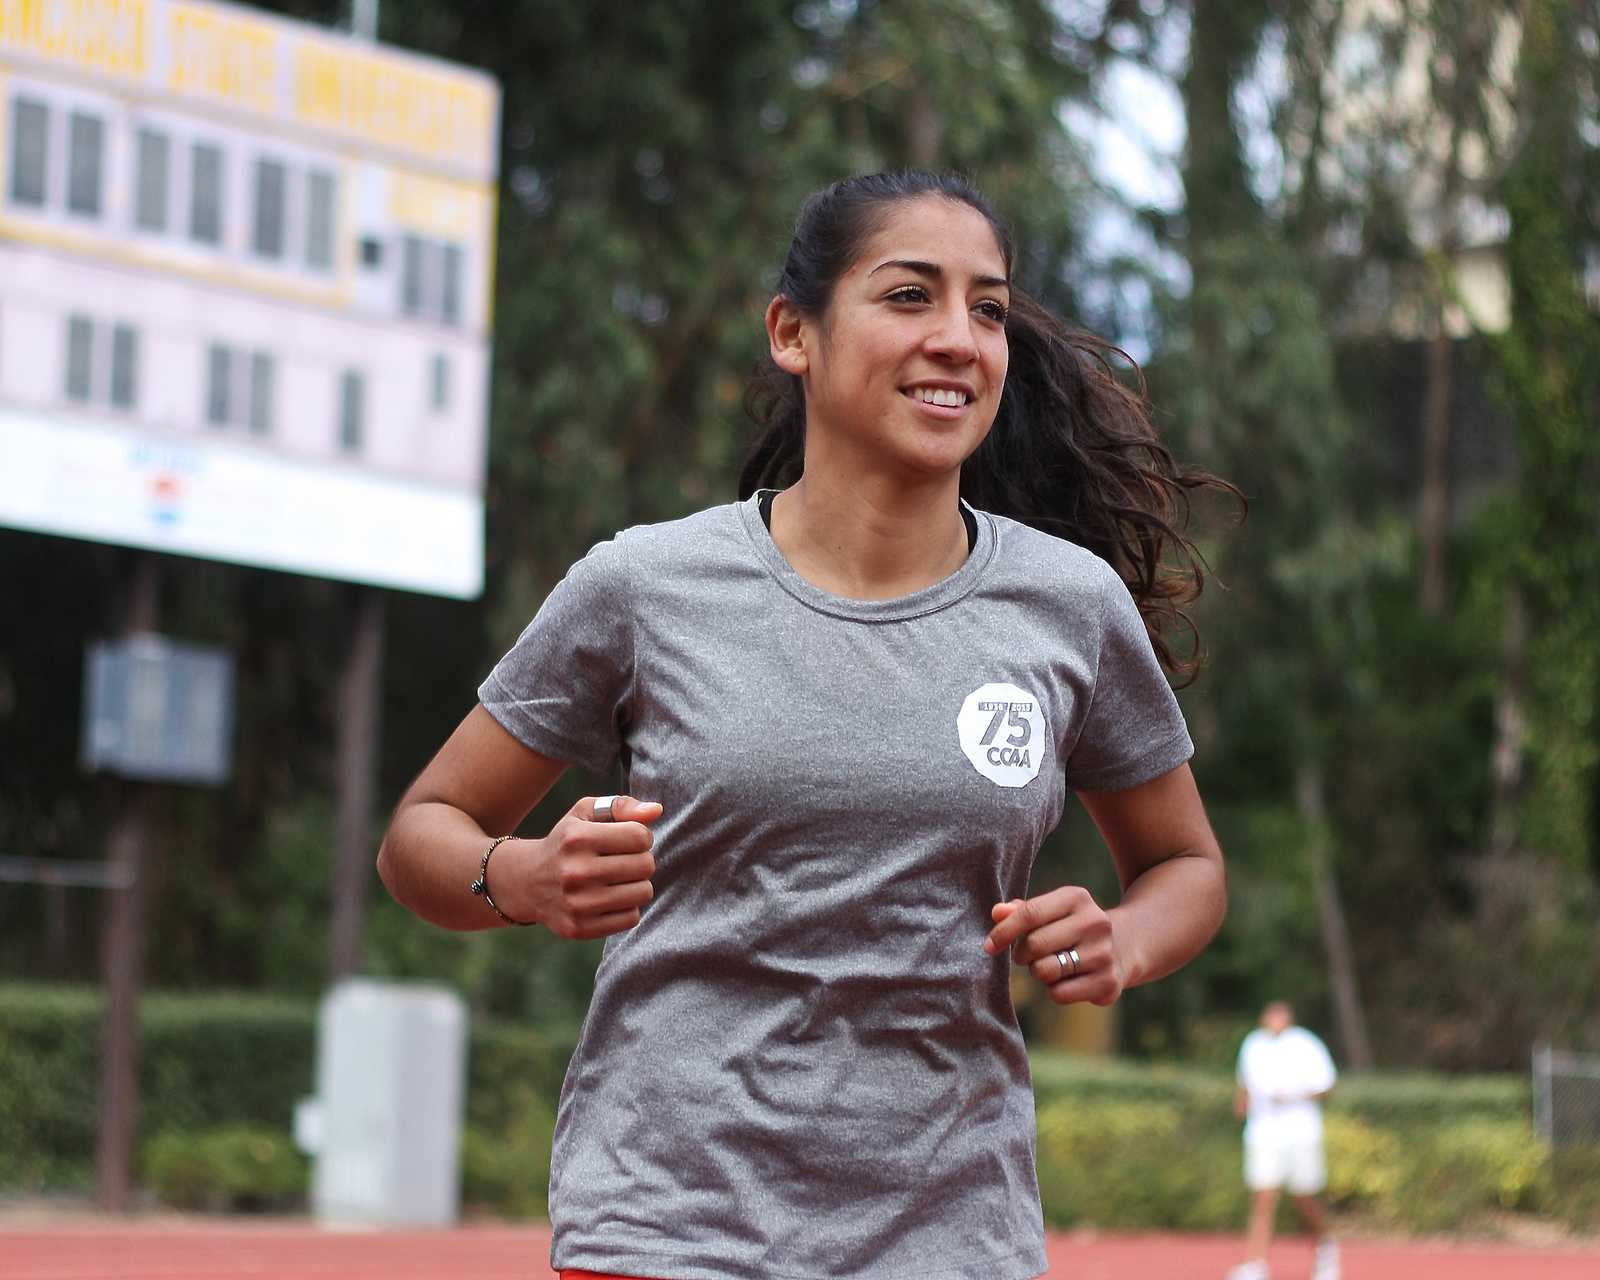 Cross-country runner strives for nationals despite lingering injury